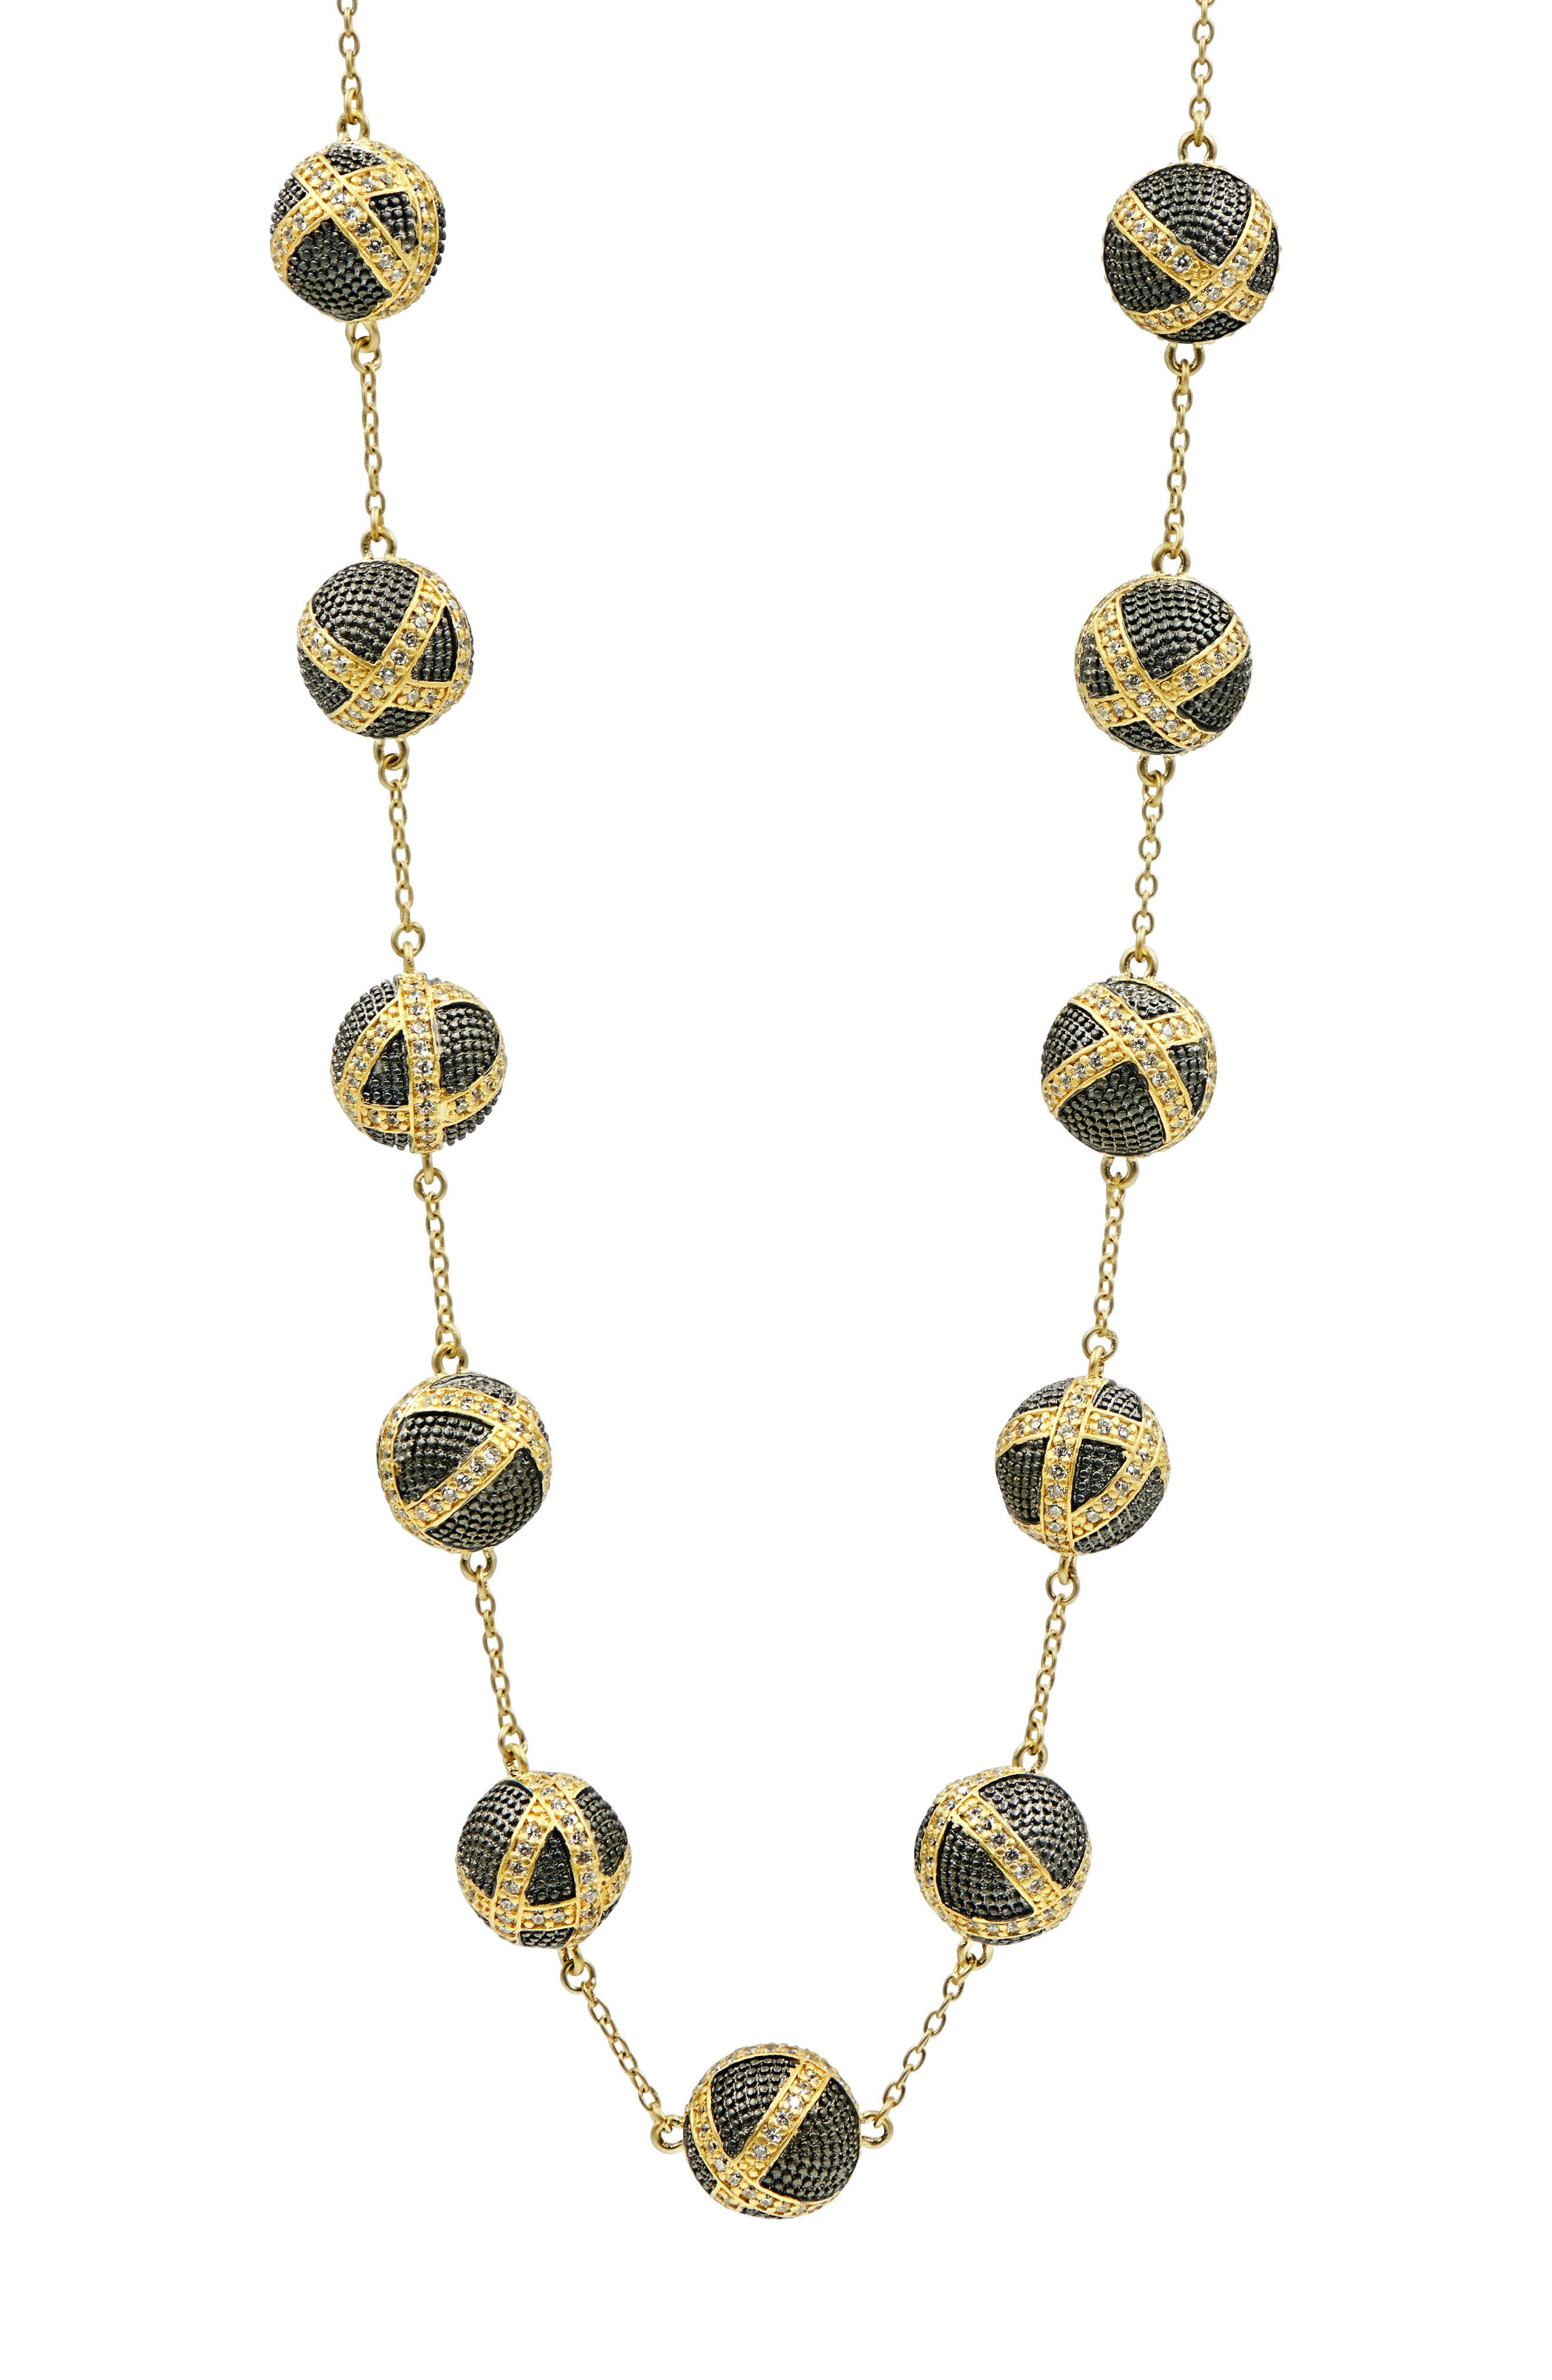 Image of Freida Rothman 14K Yellow Gold & Black Rhodium Plated Pave CZ Bauble Collar Necklace